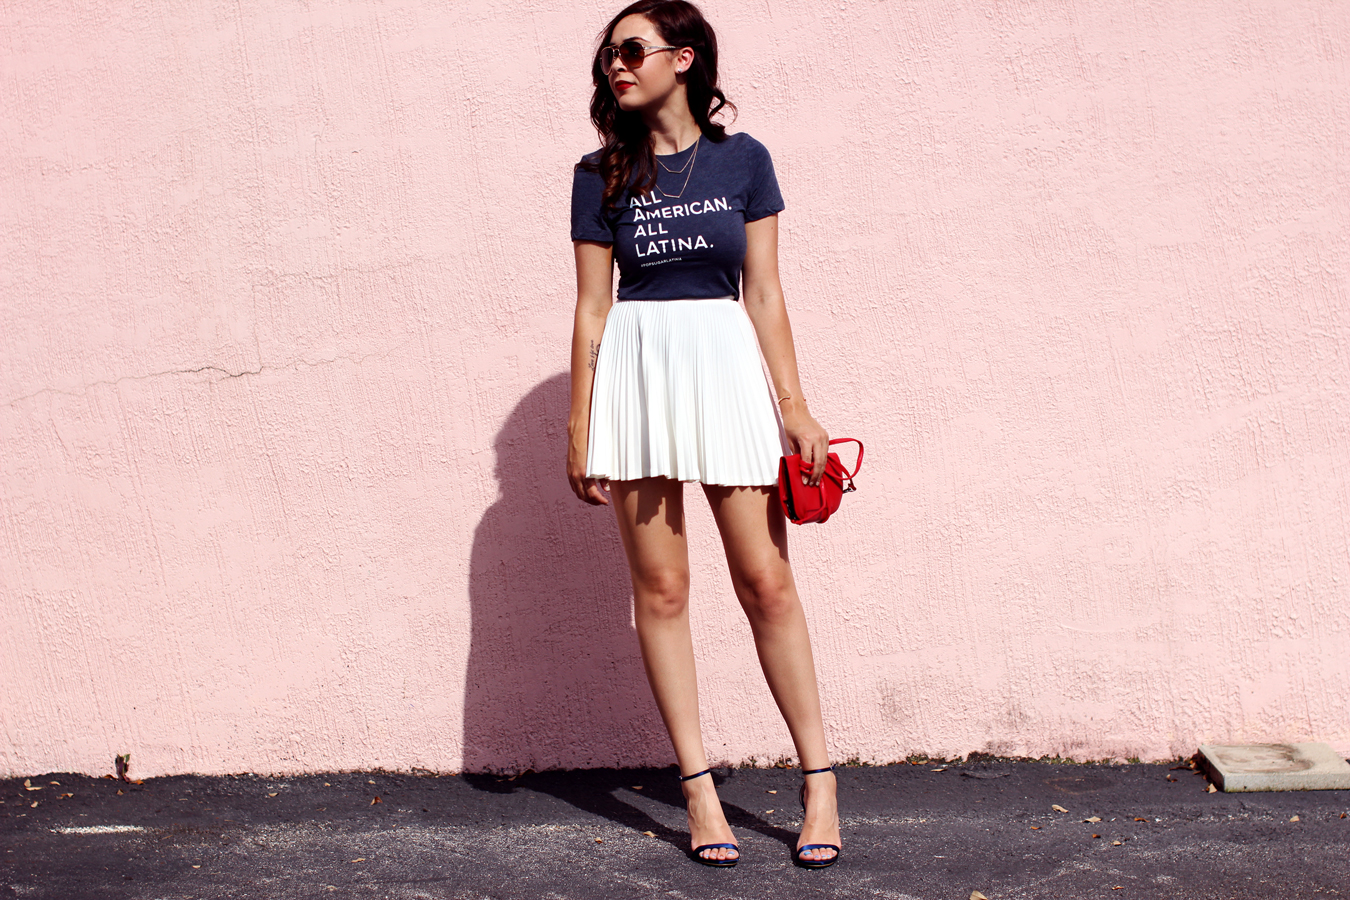 Fixin-to-thrill-latina-austin-fashion-blog-fourth-4th-july-style-holiday-themed-red-white-blue-popsugar-american-4